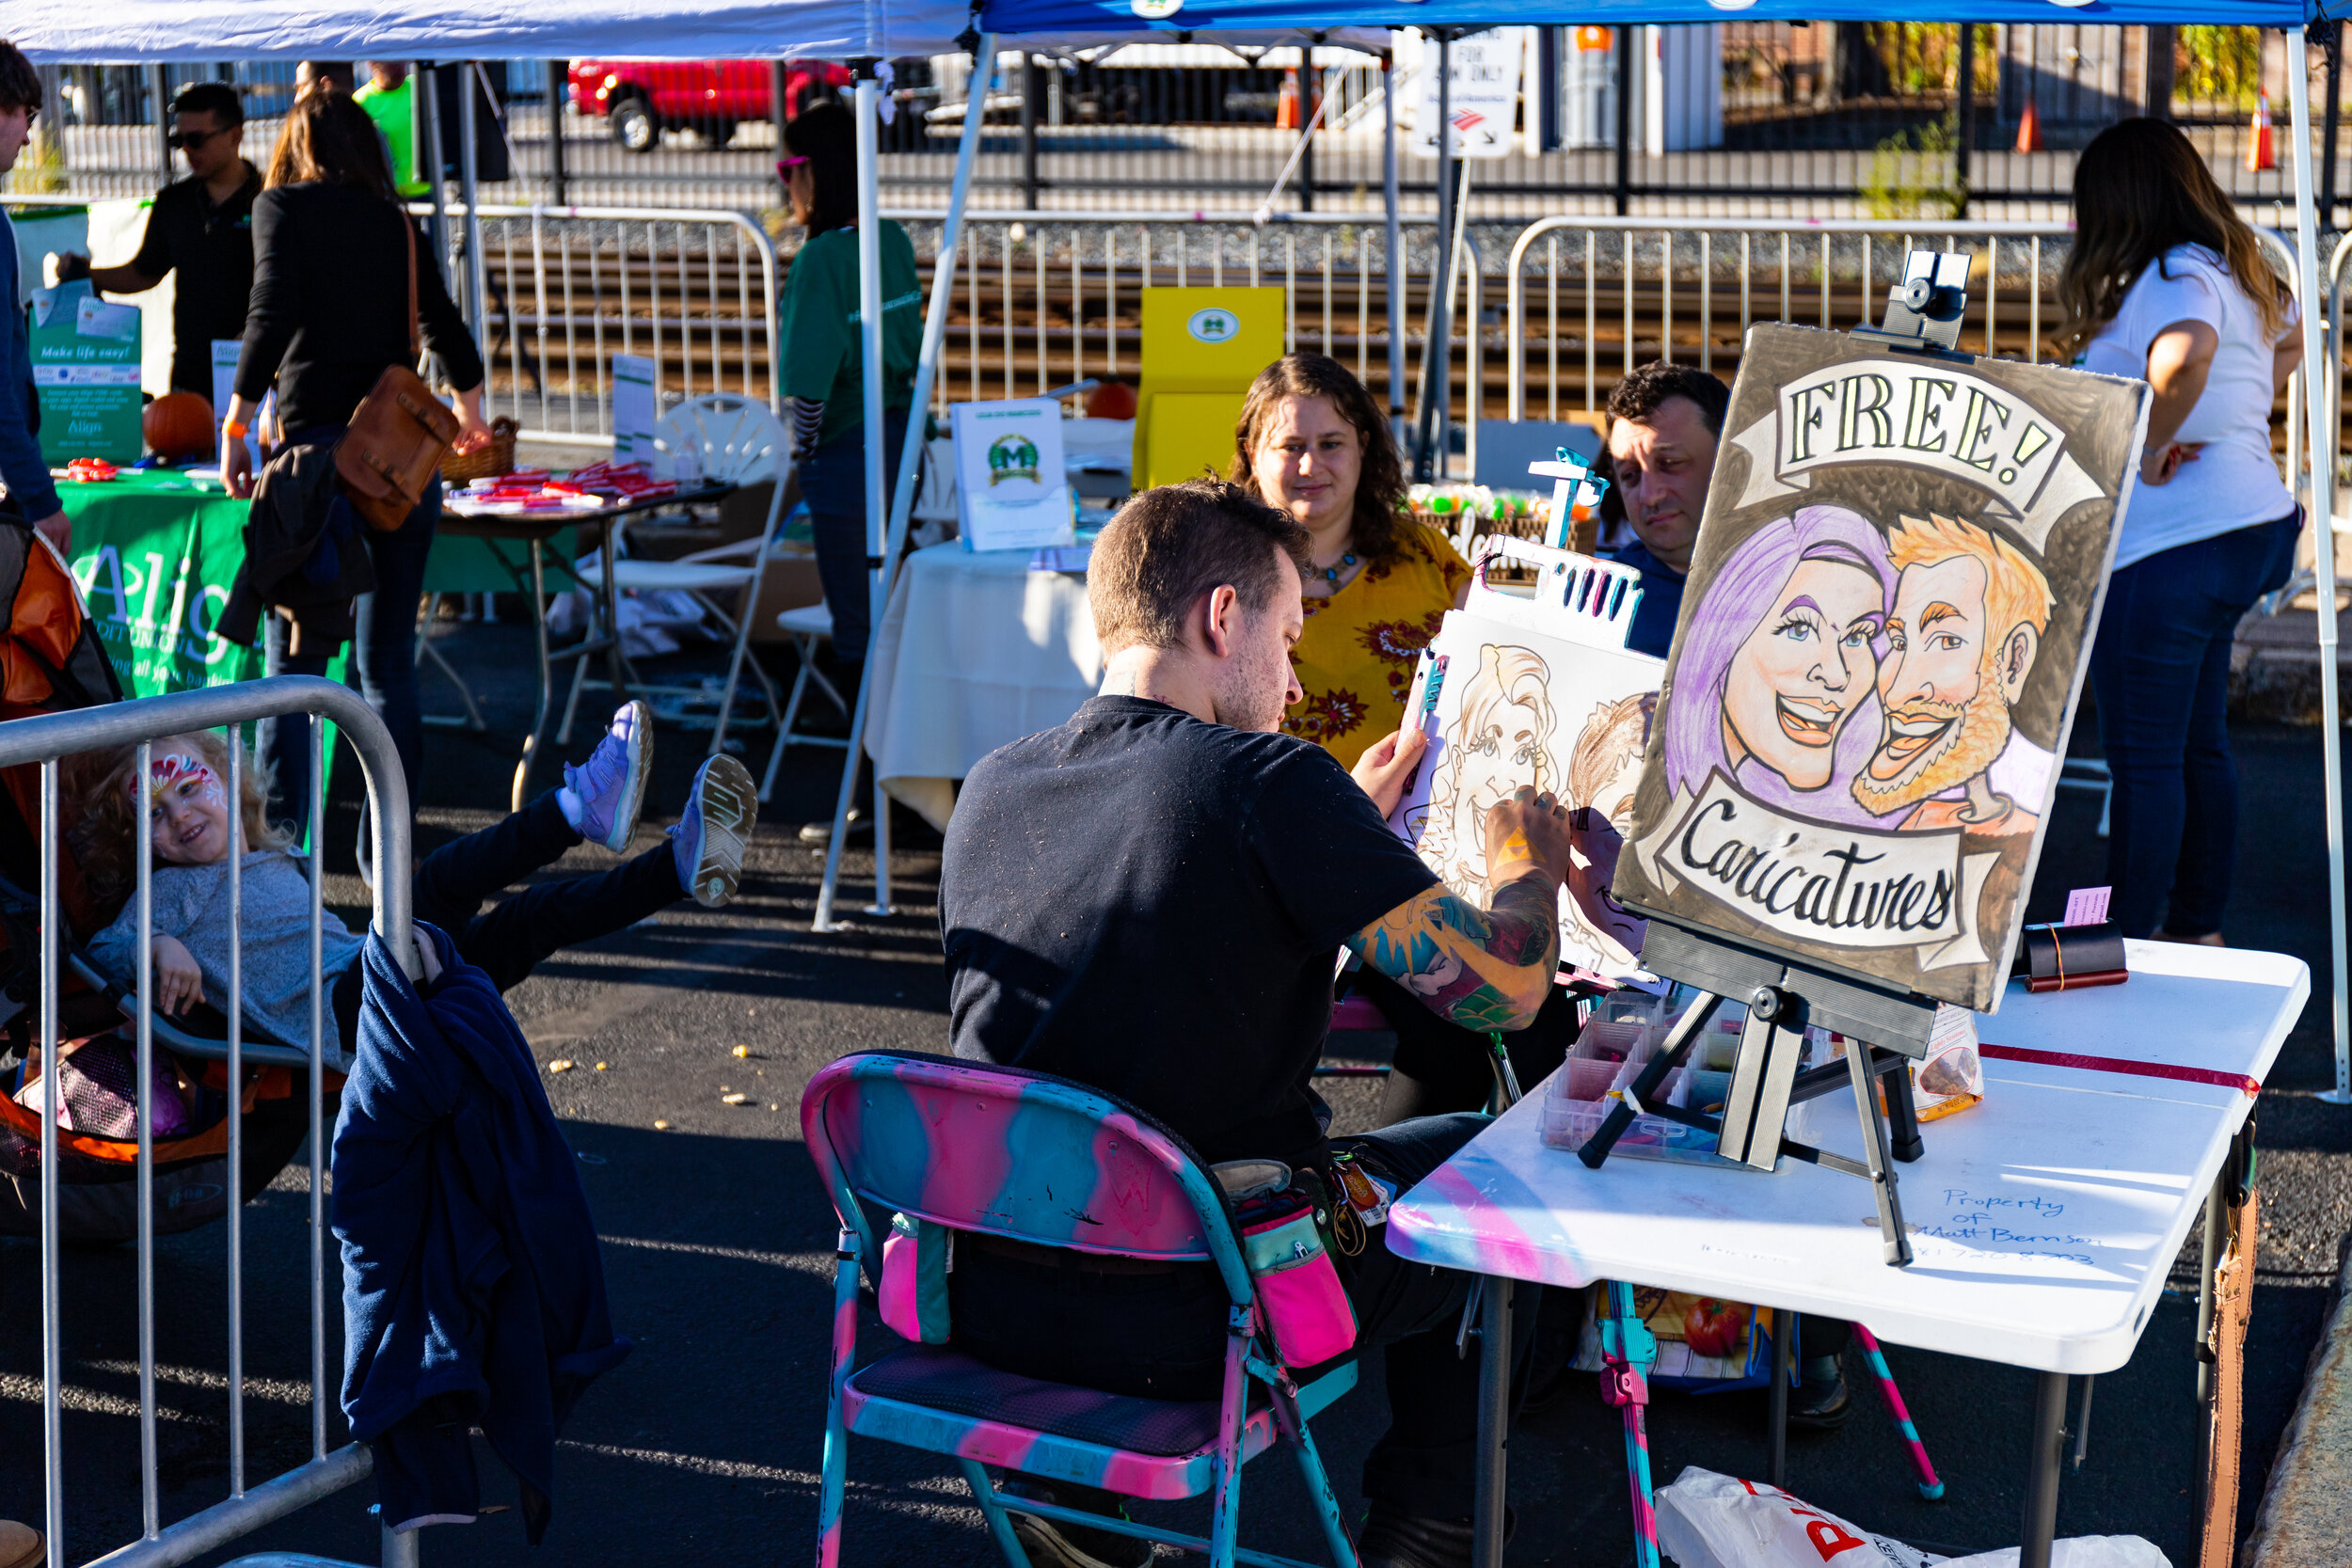 Caricature Time with Matt Berson at intersection of routes 126 and 135. Photo credit Itala Keller.